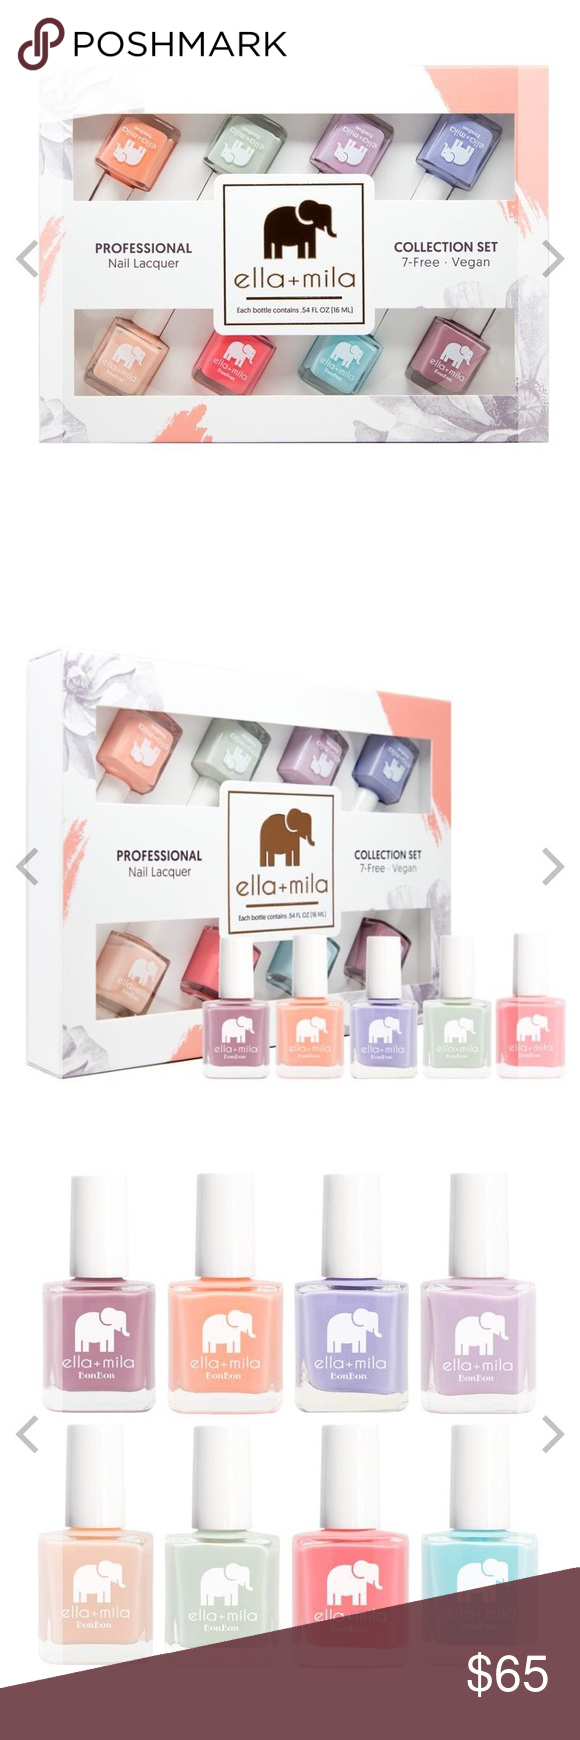 """Ella+Mila BonBon Collection Set Sold out online New in packaging. Nail polishes have never been taken out of box or opened   Dulce Amor, French Kiss, Late Night Tart, Midnight In Paris, Dessert Island, Pistache, Sweet Tooth, My Baby Blue   """"7-Free"""" products do not contain: Formaldehyde, Toluene, DiButyl Phthalate (DBP), Formaldehyde Resin, Camphor, TPHP, Xylene  Vegan  Animal cruelty-free  Quick Dry  Chip Resistant  Made in the USA  Certified by PETA ella+mila Makeup"""